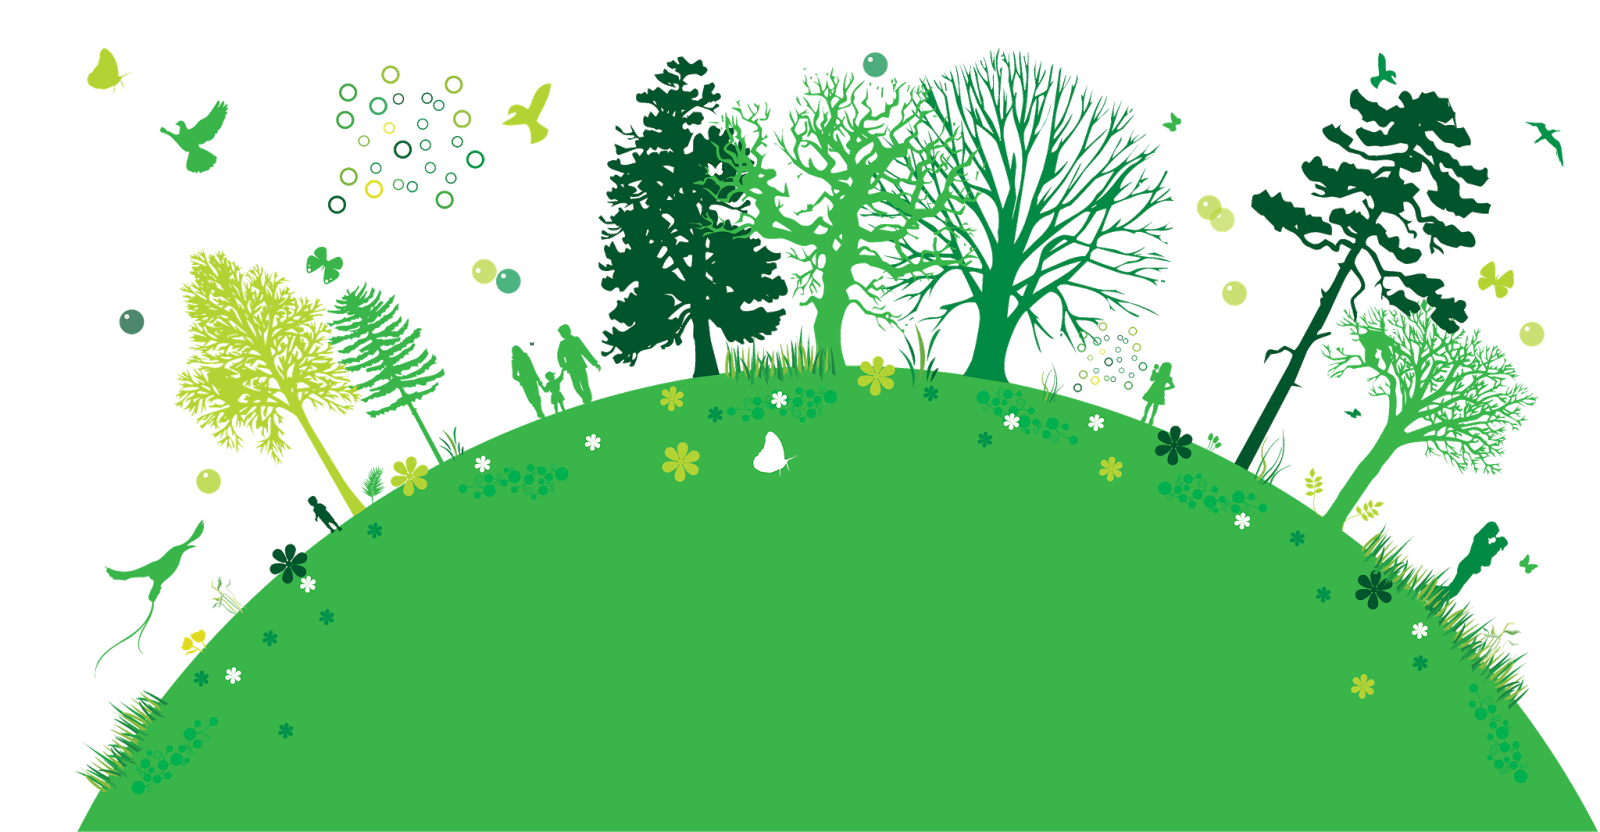 planet clipart green planet